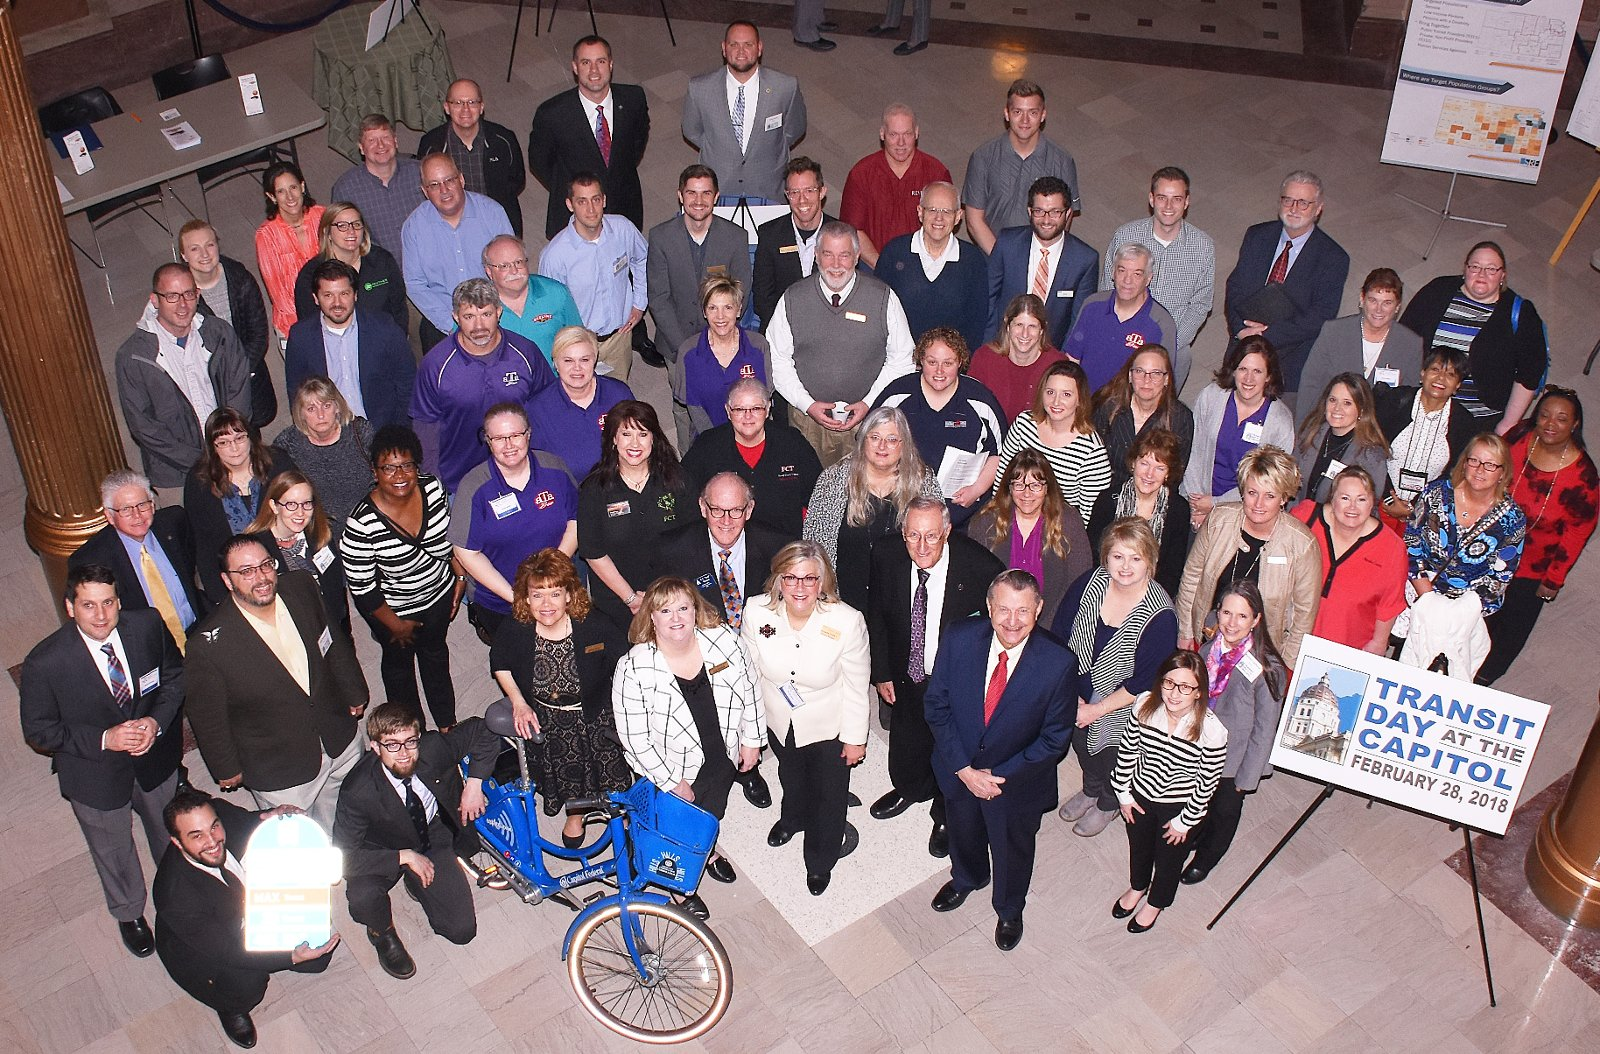 Attendees and speakers at Transit Day at the Capitol 2018.